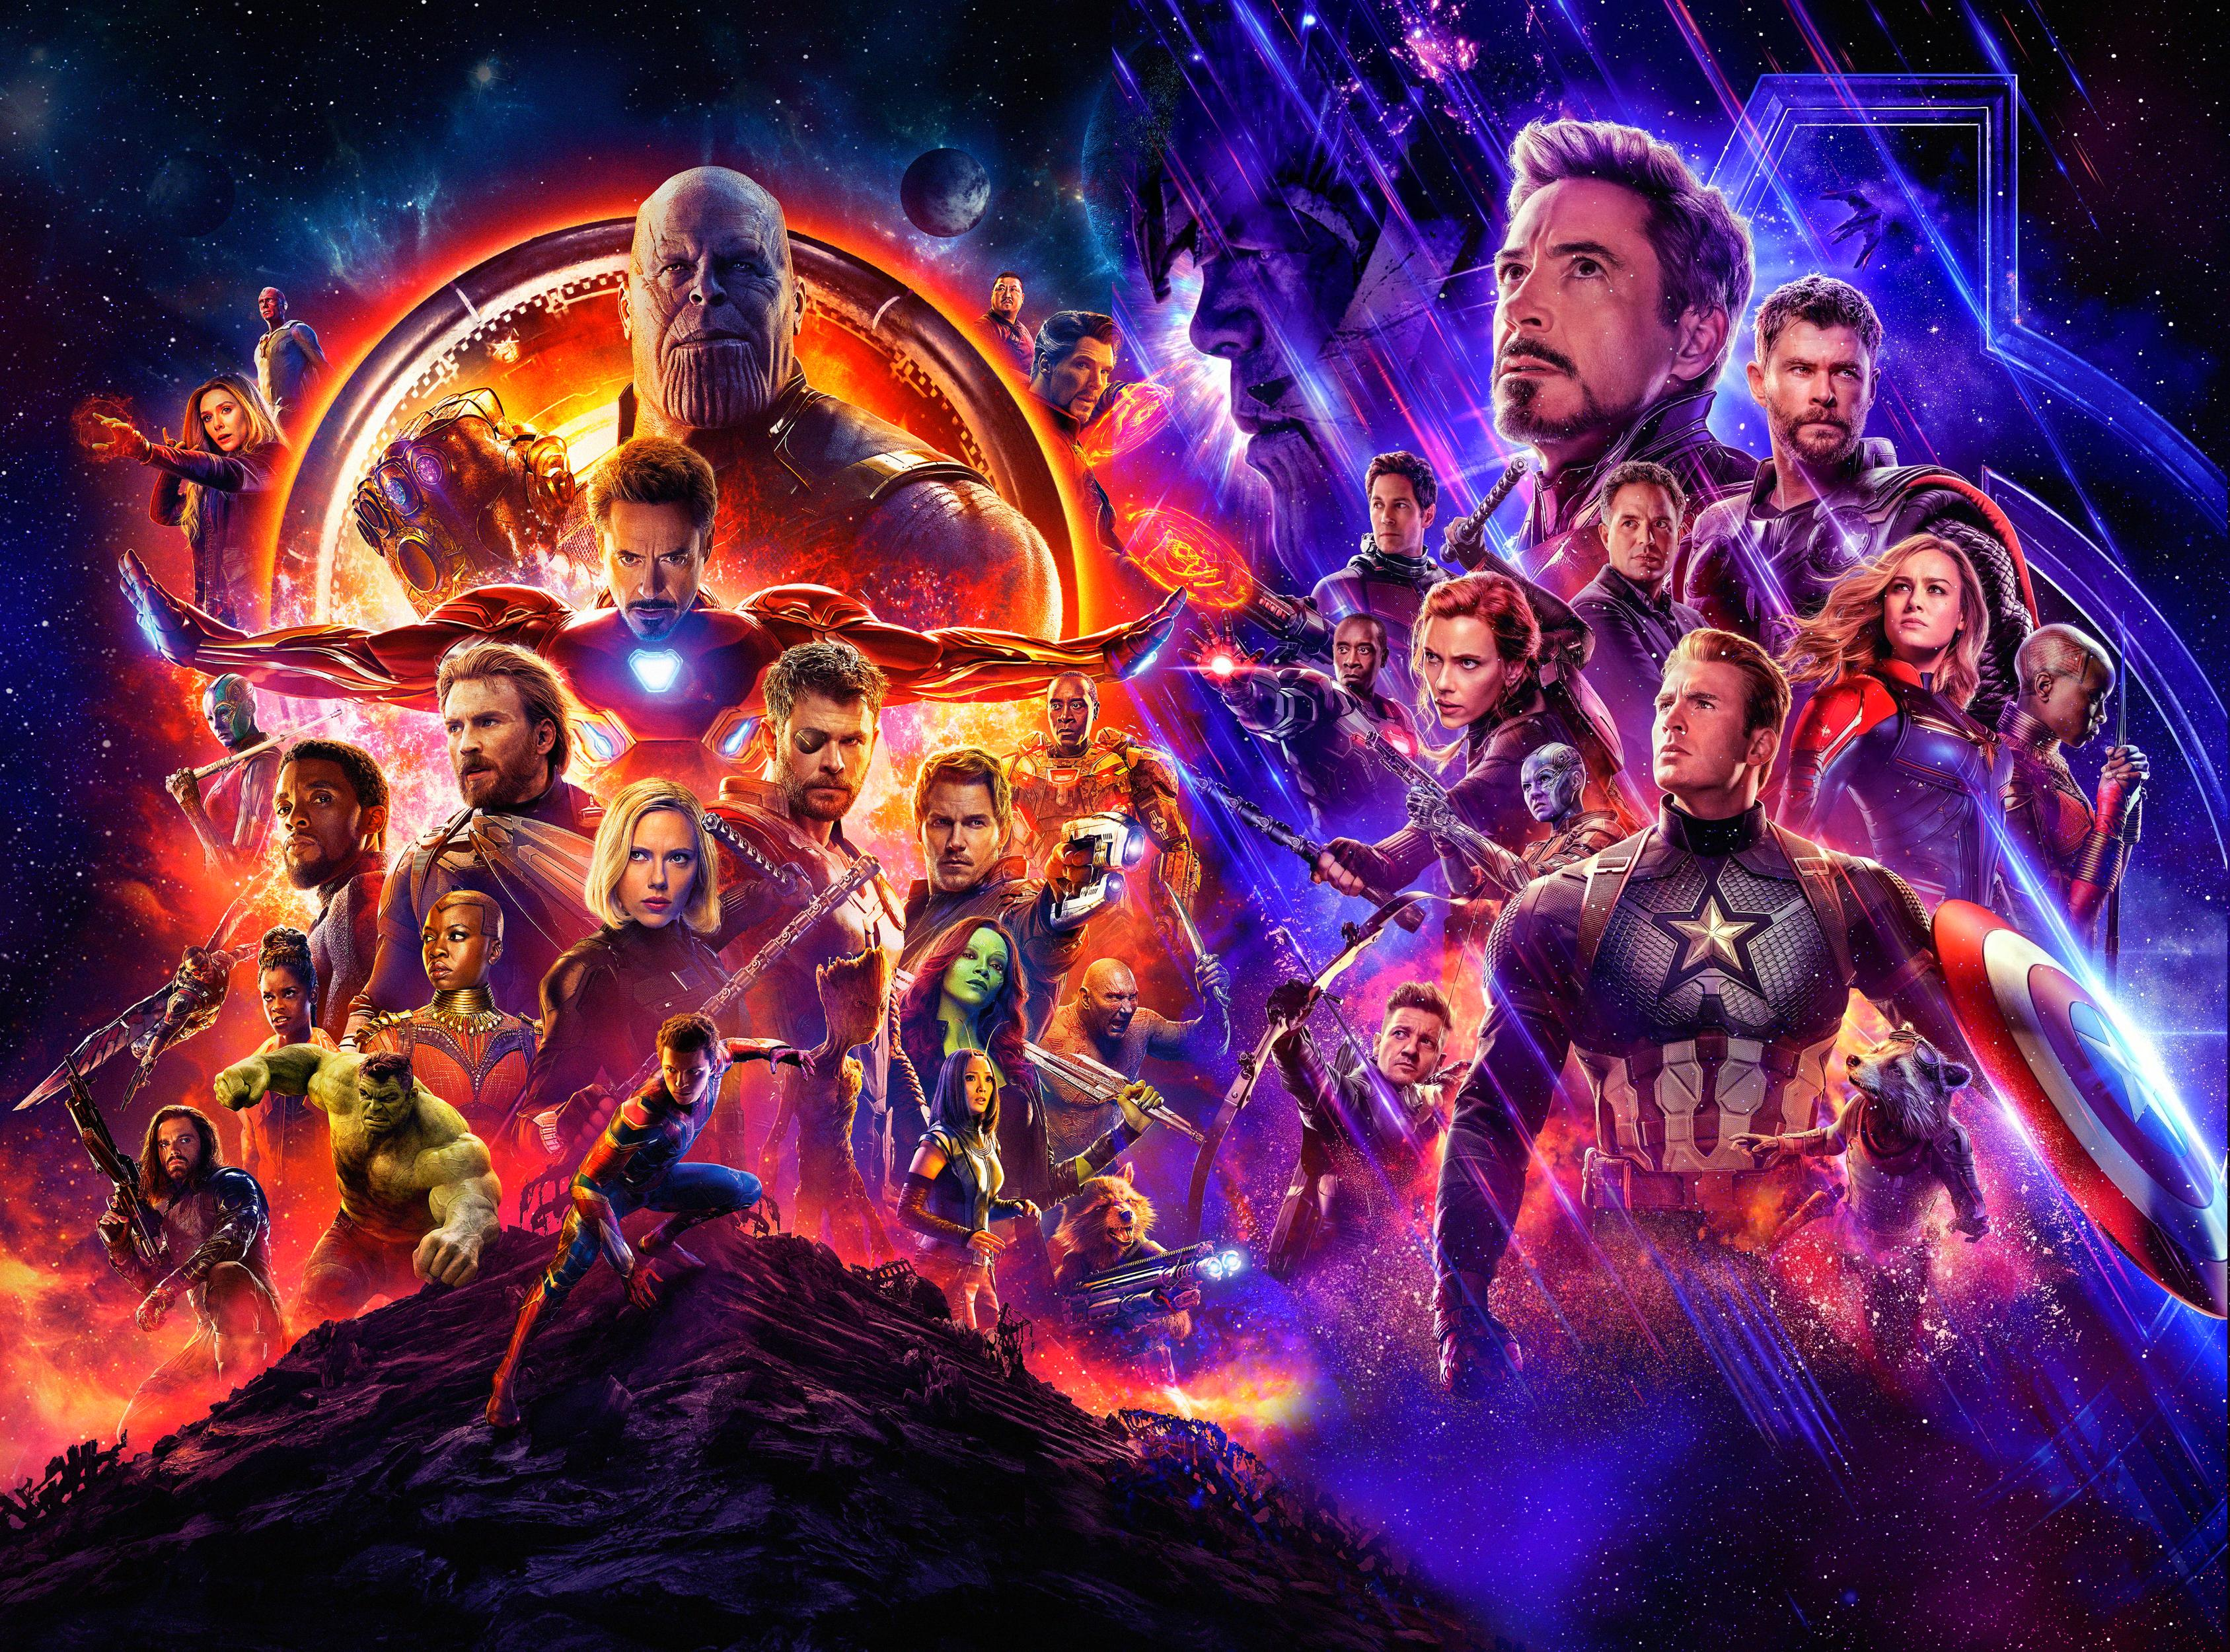 Movie Poster 2019: Avengers Infinity War And Endgame Poster, HD Superheroes